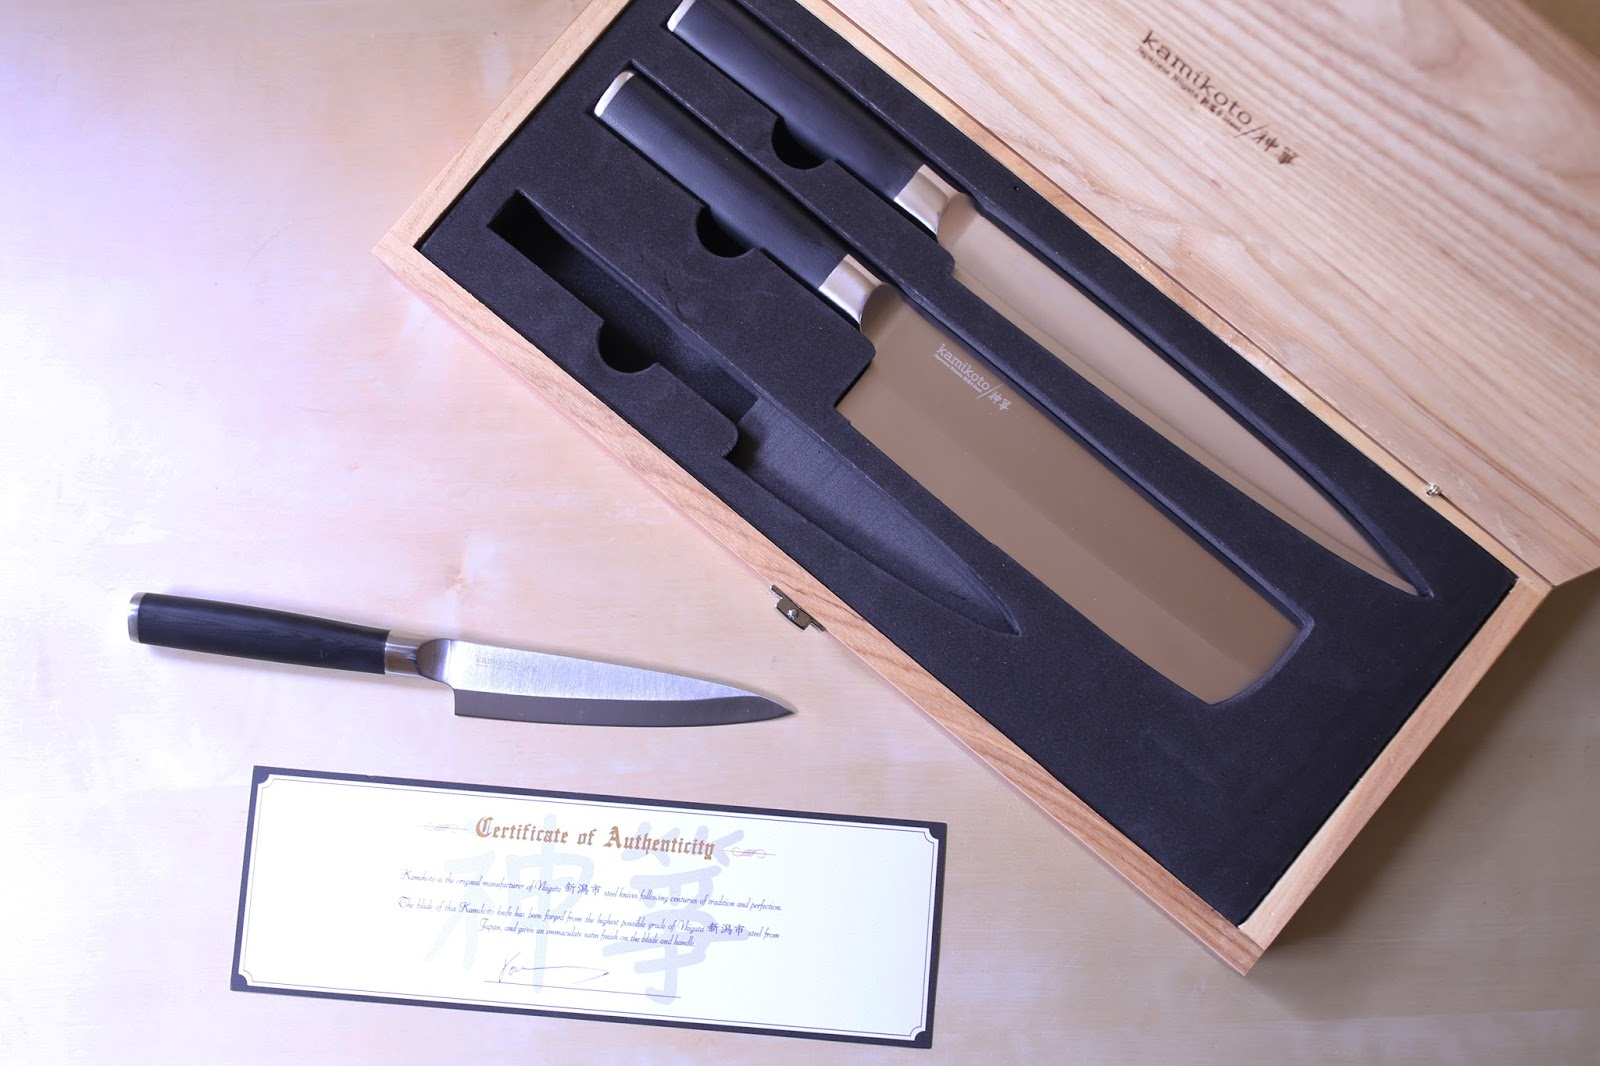 Japanese Foodie: KAMIKOTO 神箏 KANPEKI KNIFE SET REVIEW